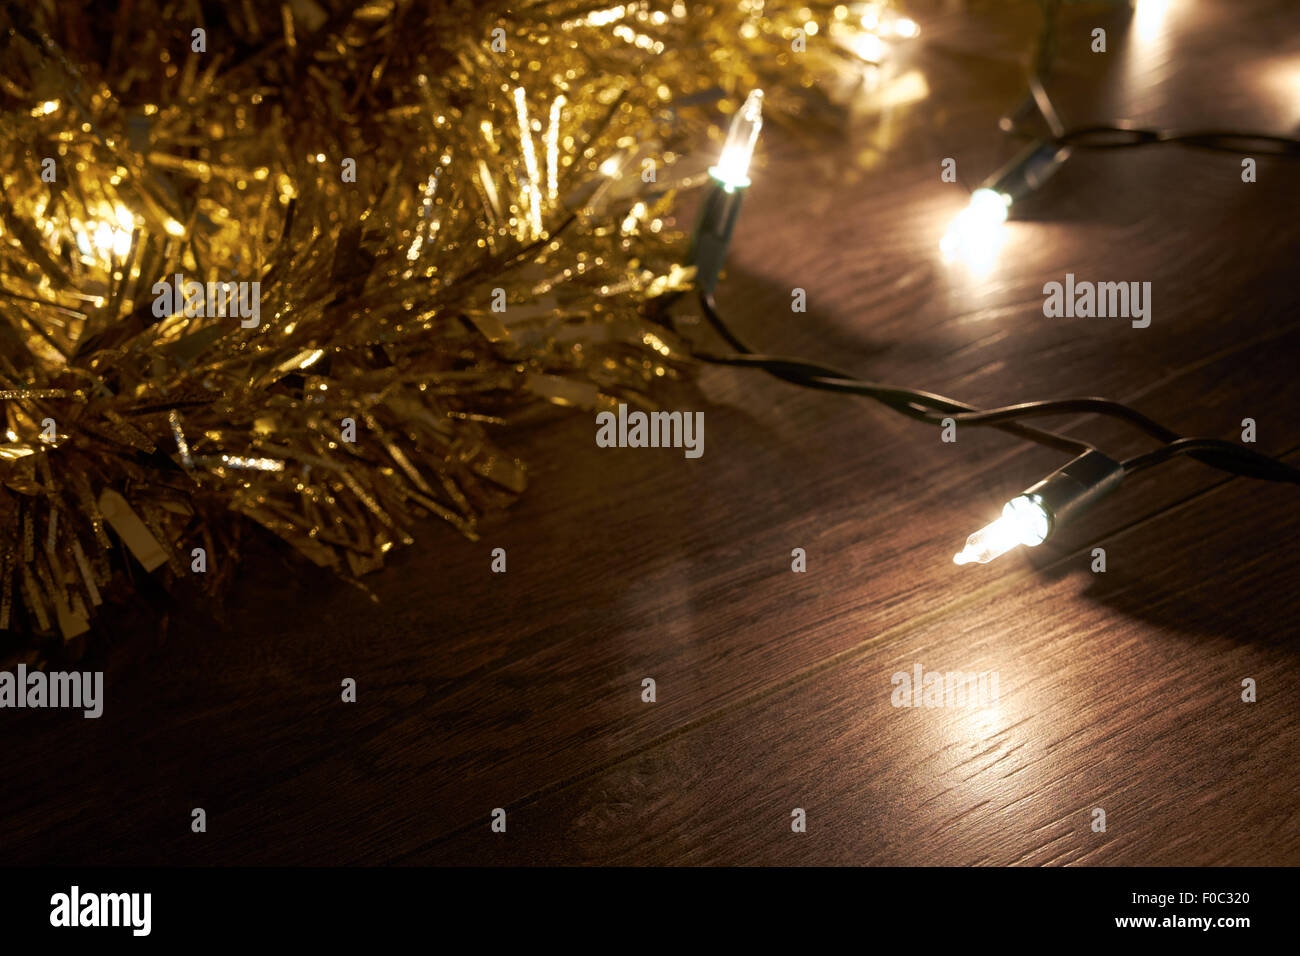 Traditional Christmas Tree lights and tinsel lying on a wooden floor. - Stock Image